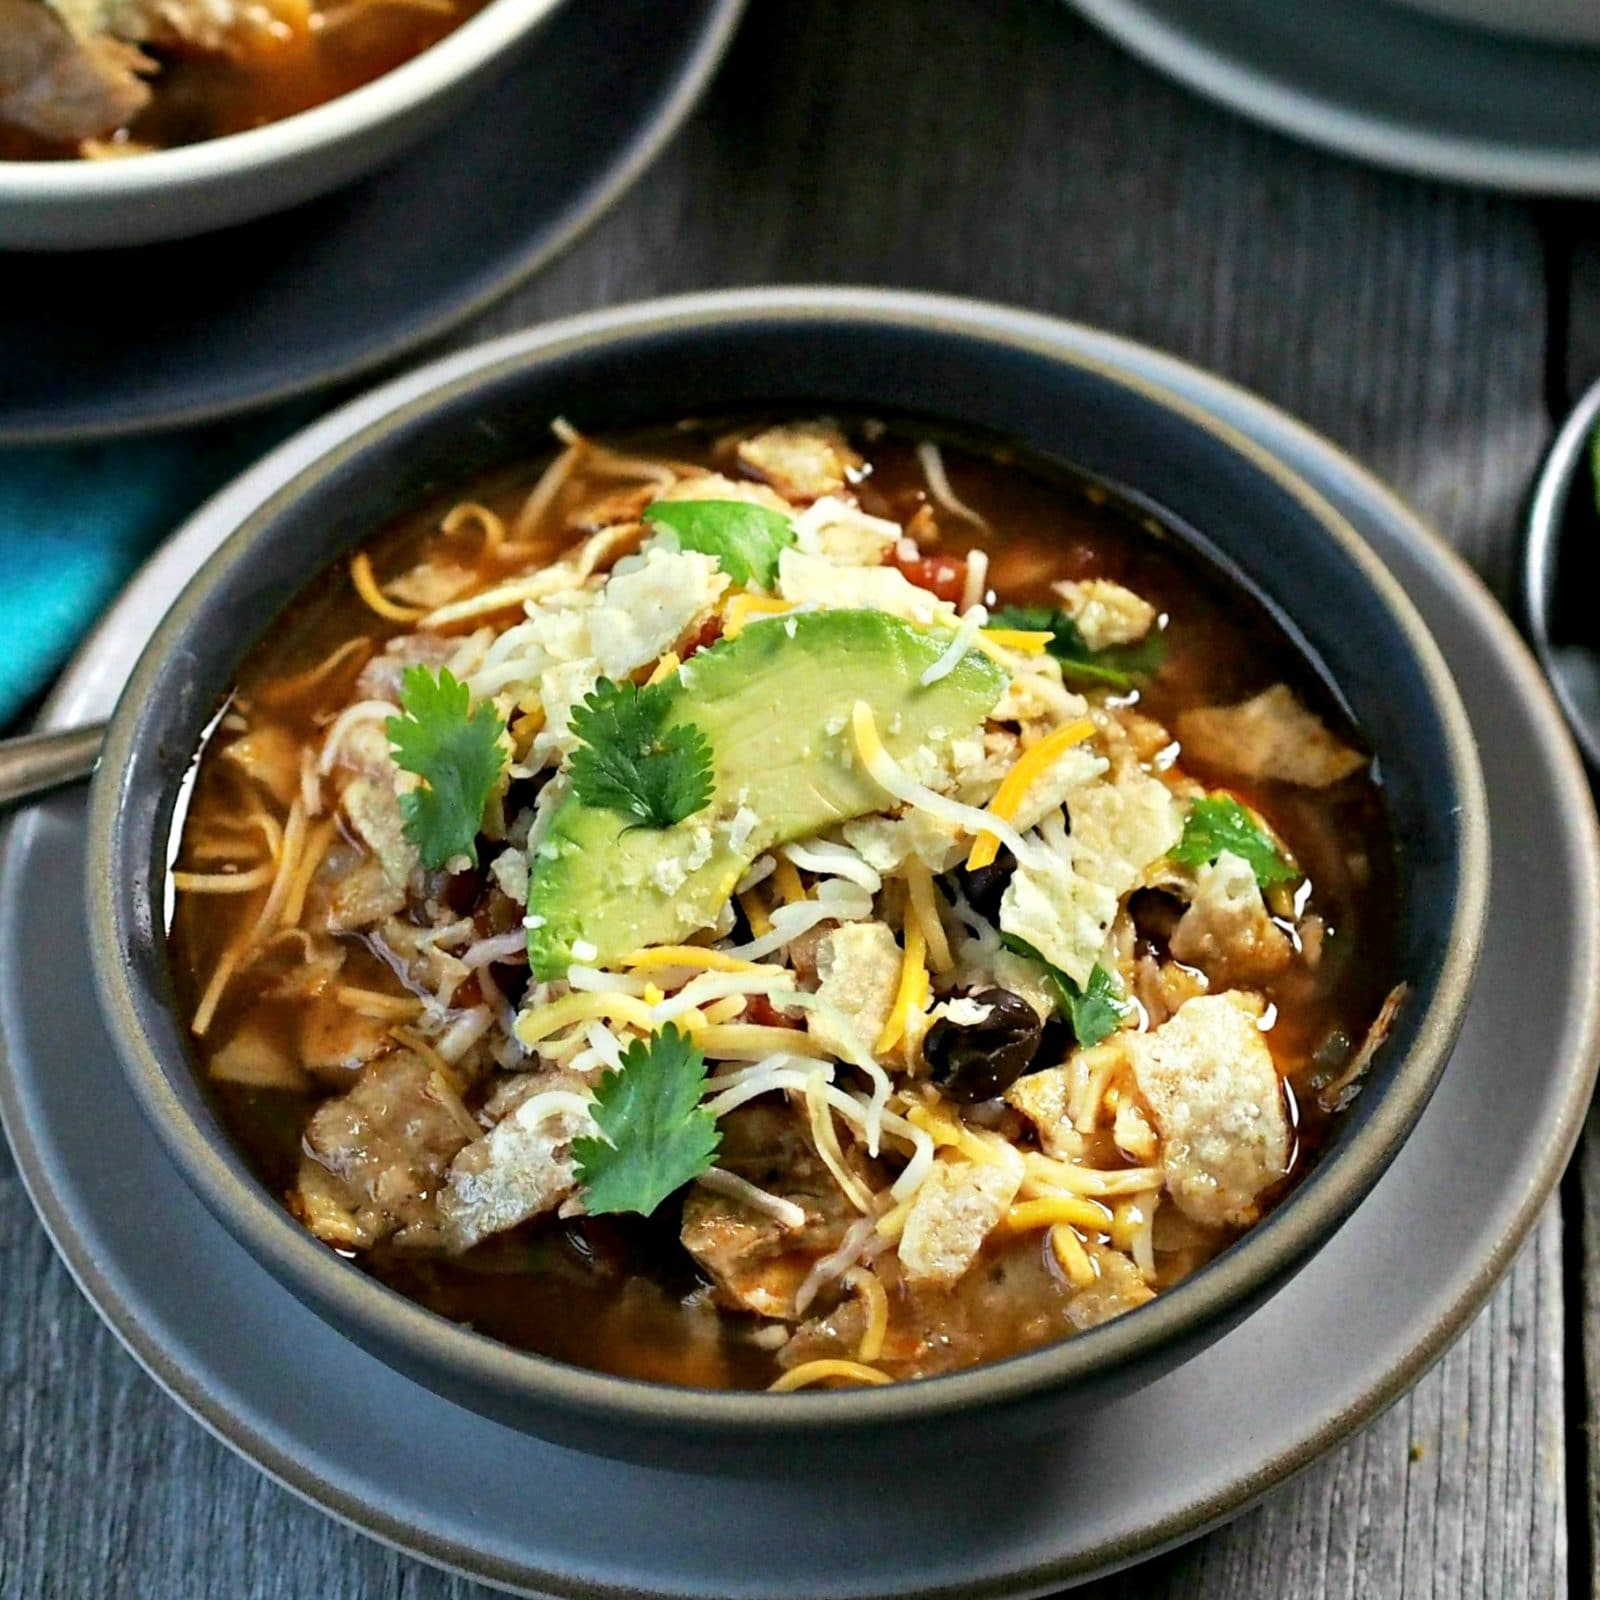 Chicken Tortilla Soup - chicken, beans, tomatoes and Mexican spices simmered together and topped with tortilla chips, cheese & sour cream. So delicious! Simply Sated